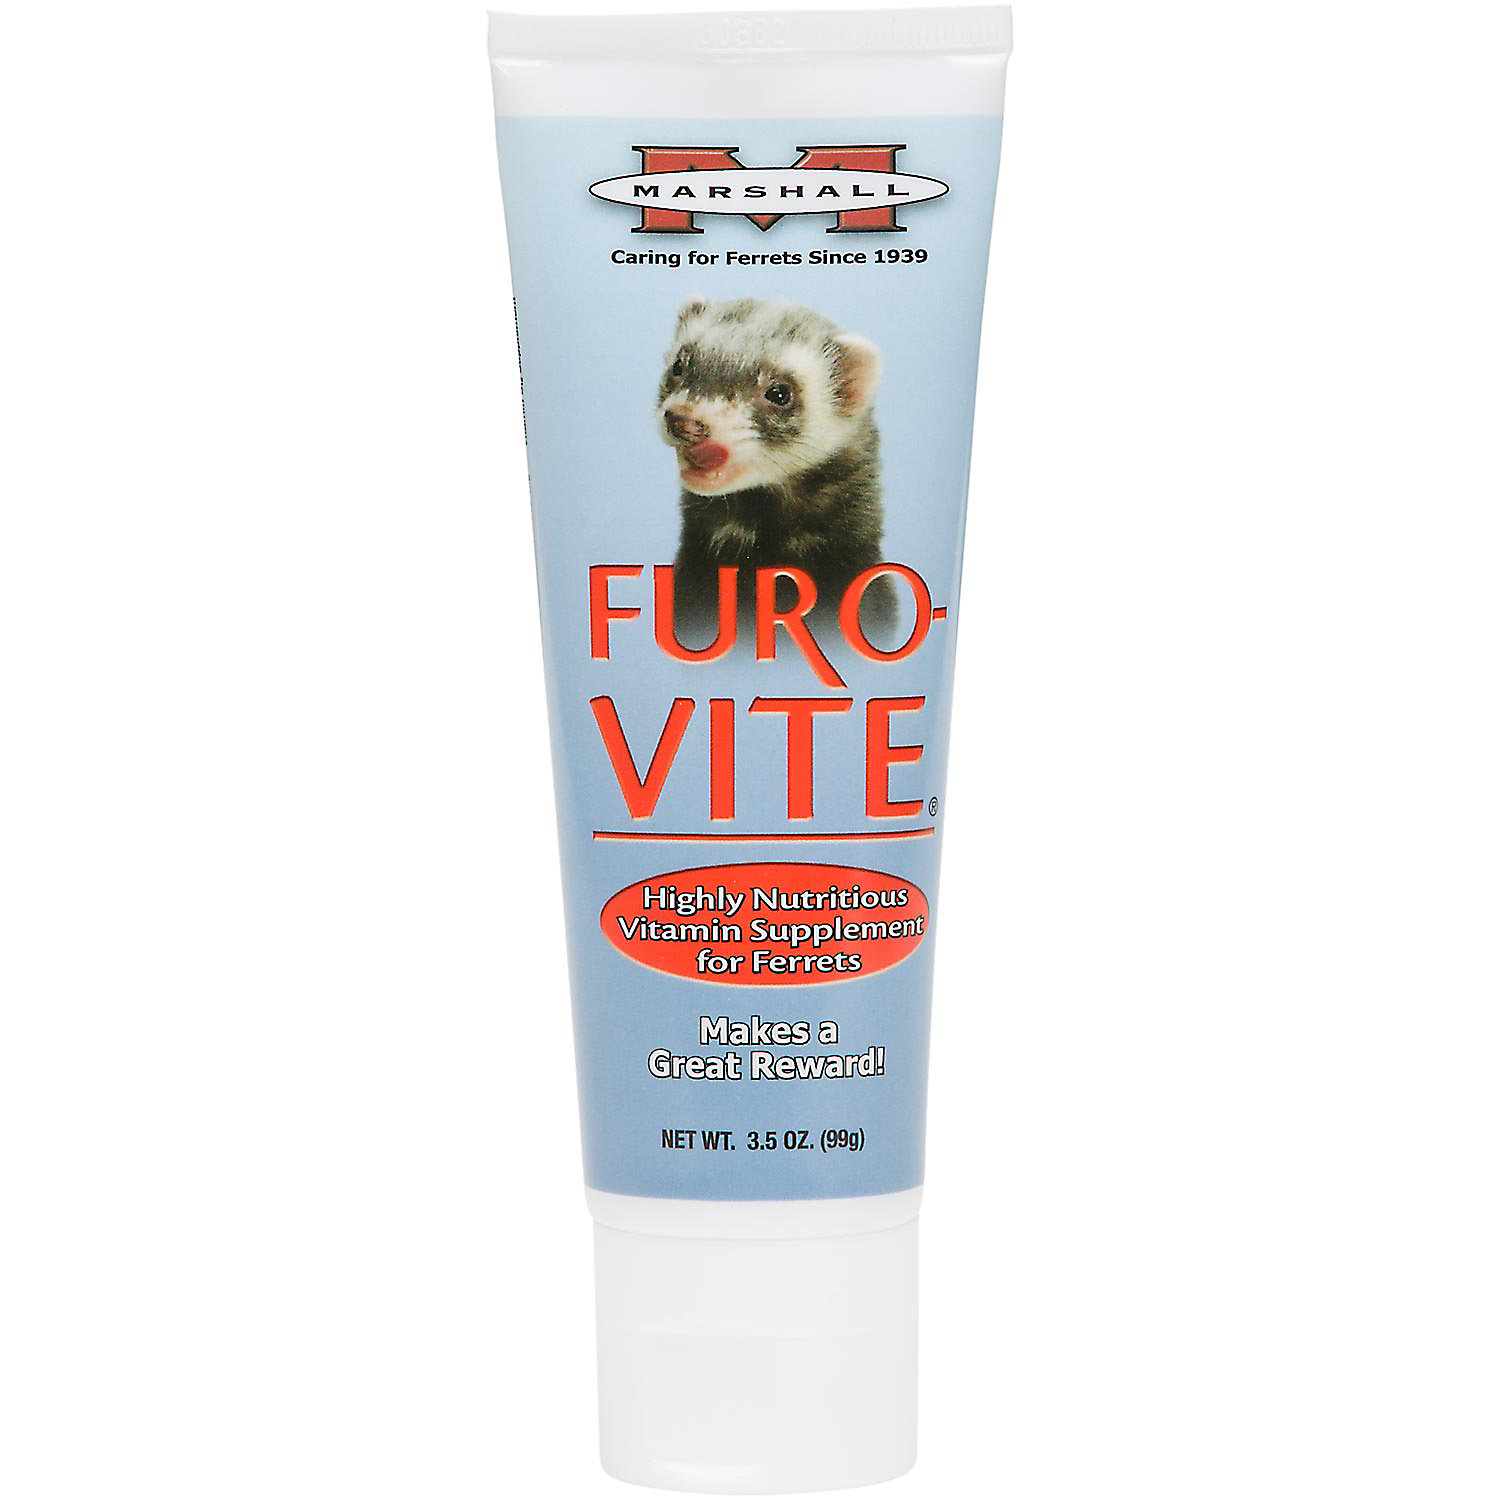 Marshall Pet Products Furo Vite Highly Nutritious Ferret Vitamin Supplement 3.5 Oz.